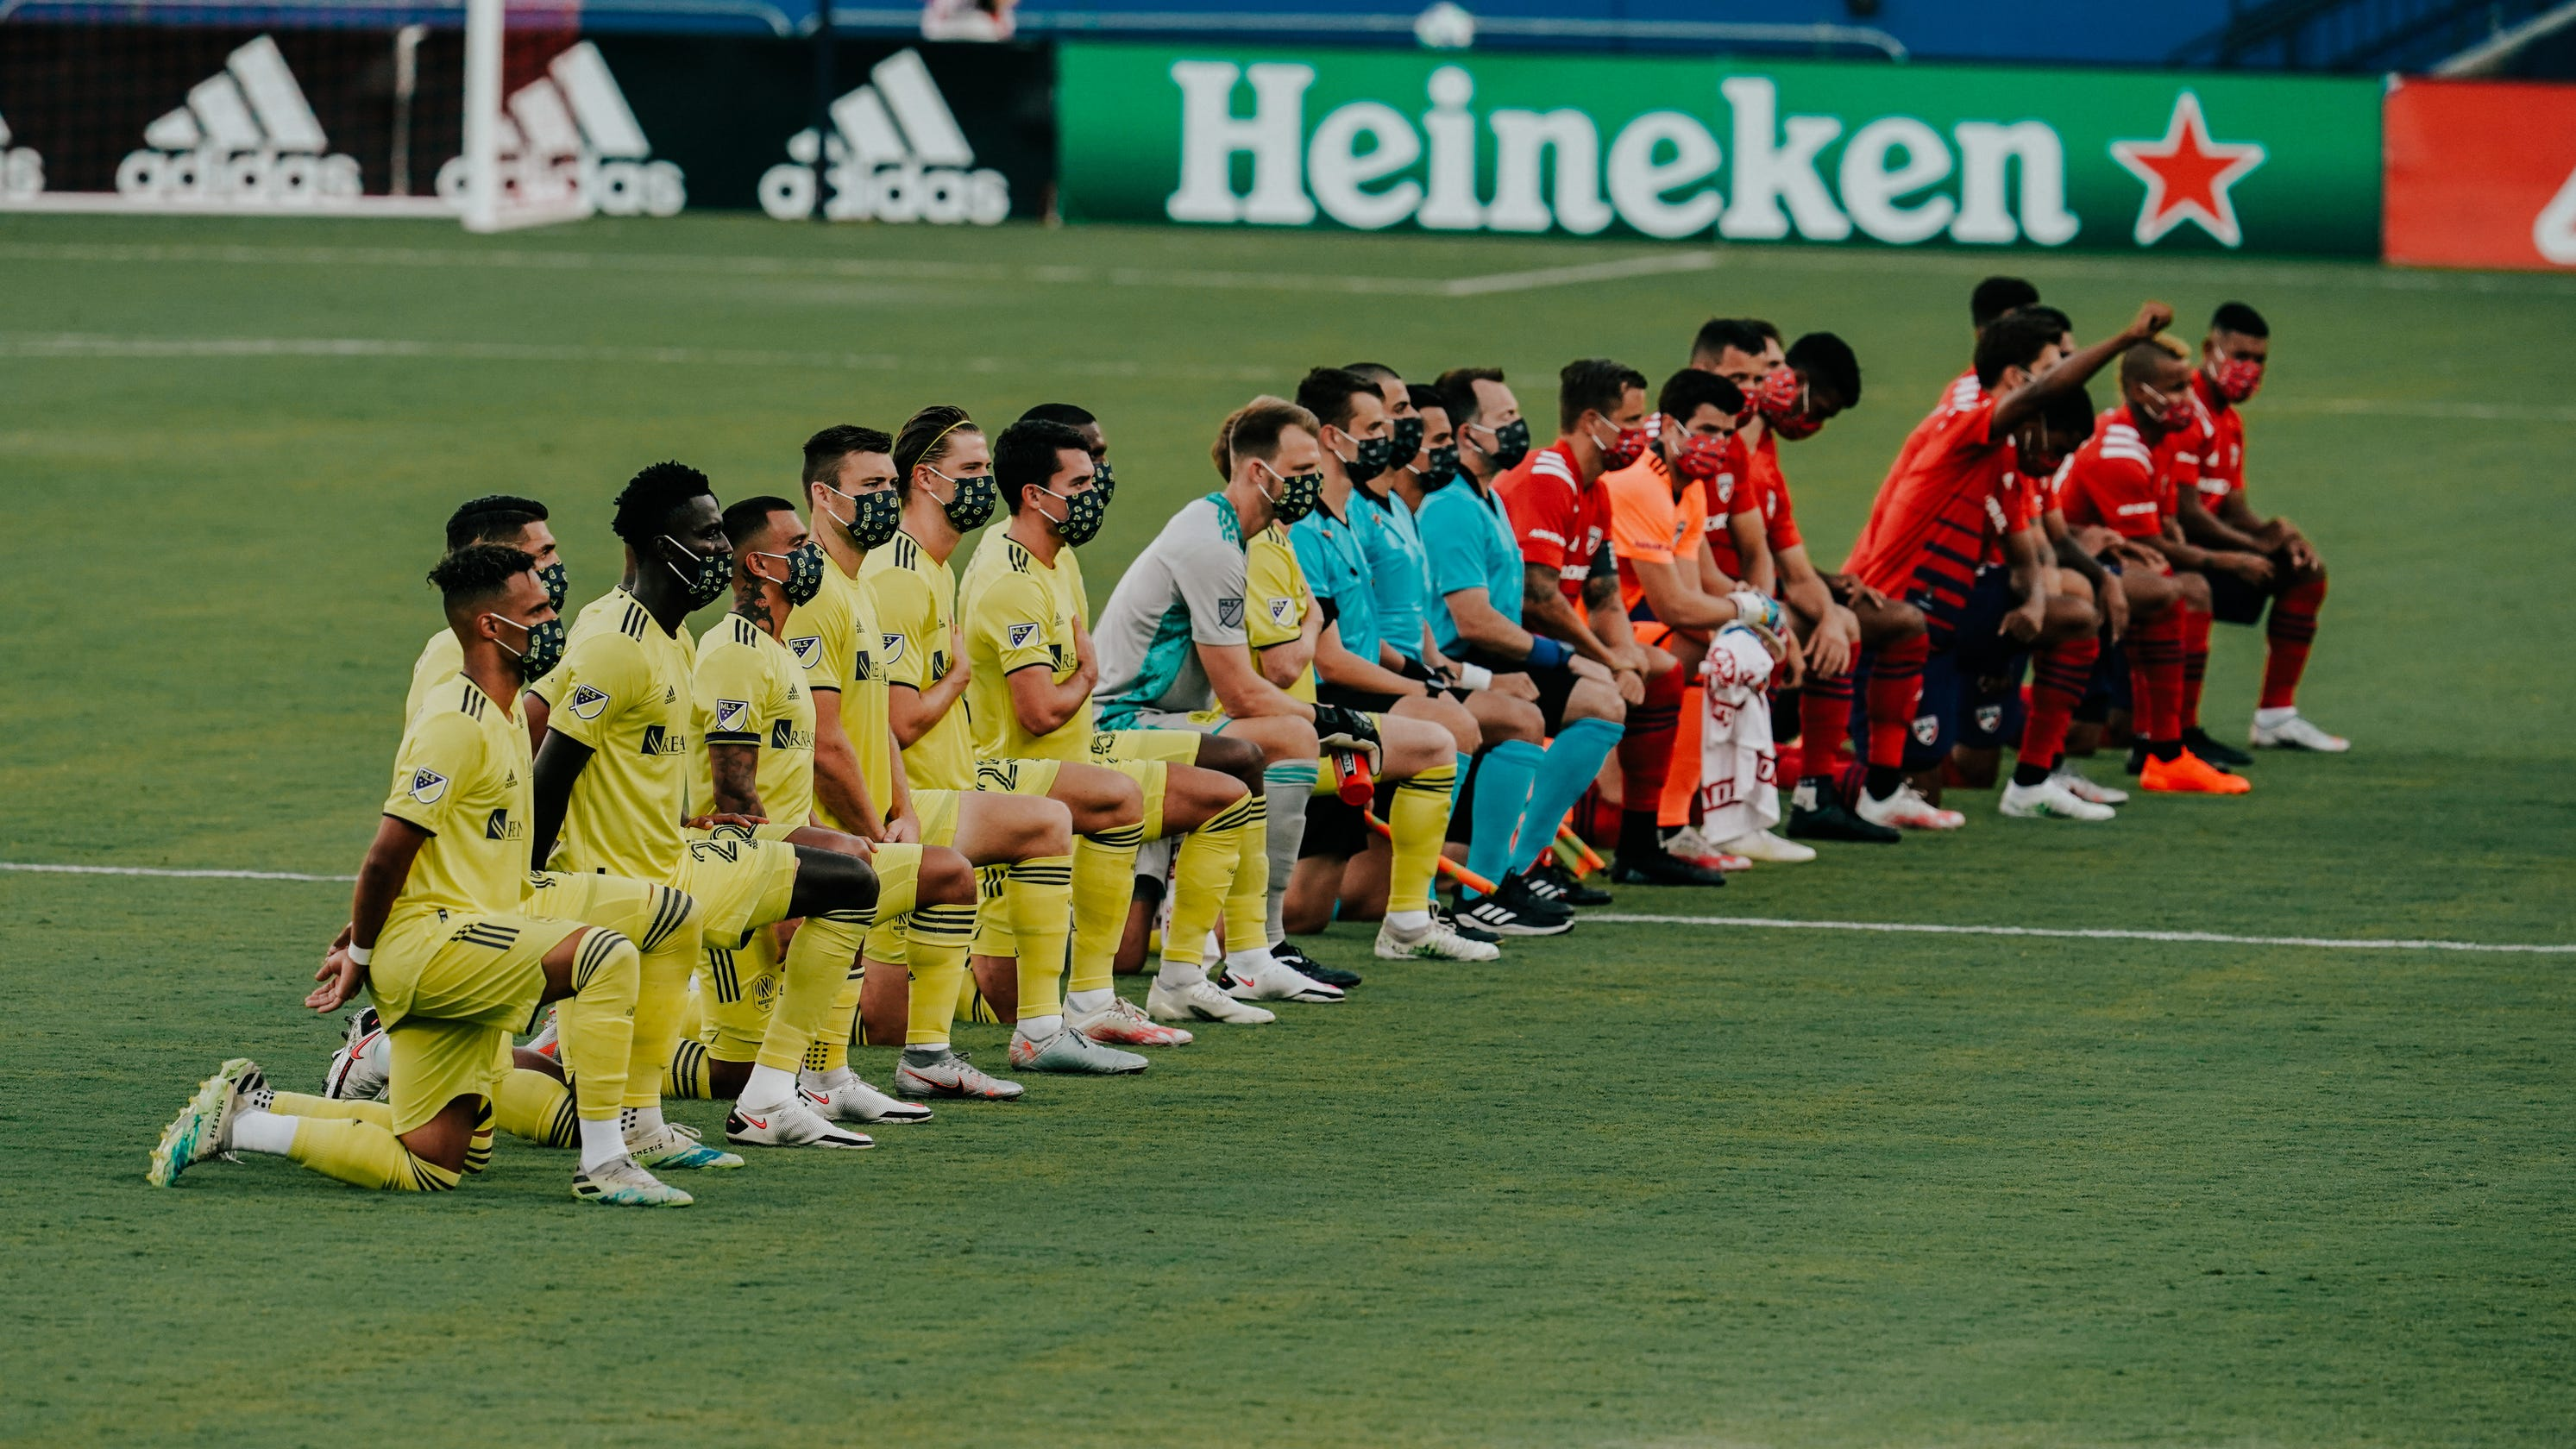 Fans boo, chant 'USA' when Nashville SC, FC Dallas players kneel during national anthem